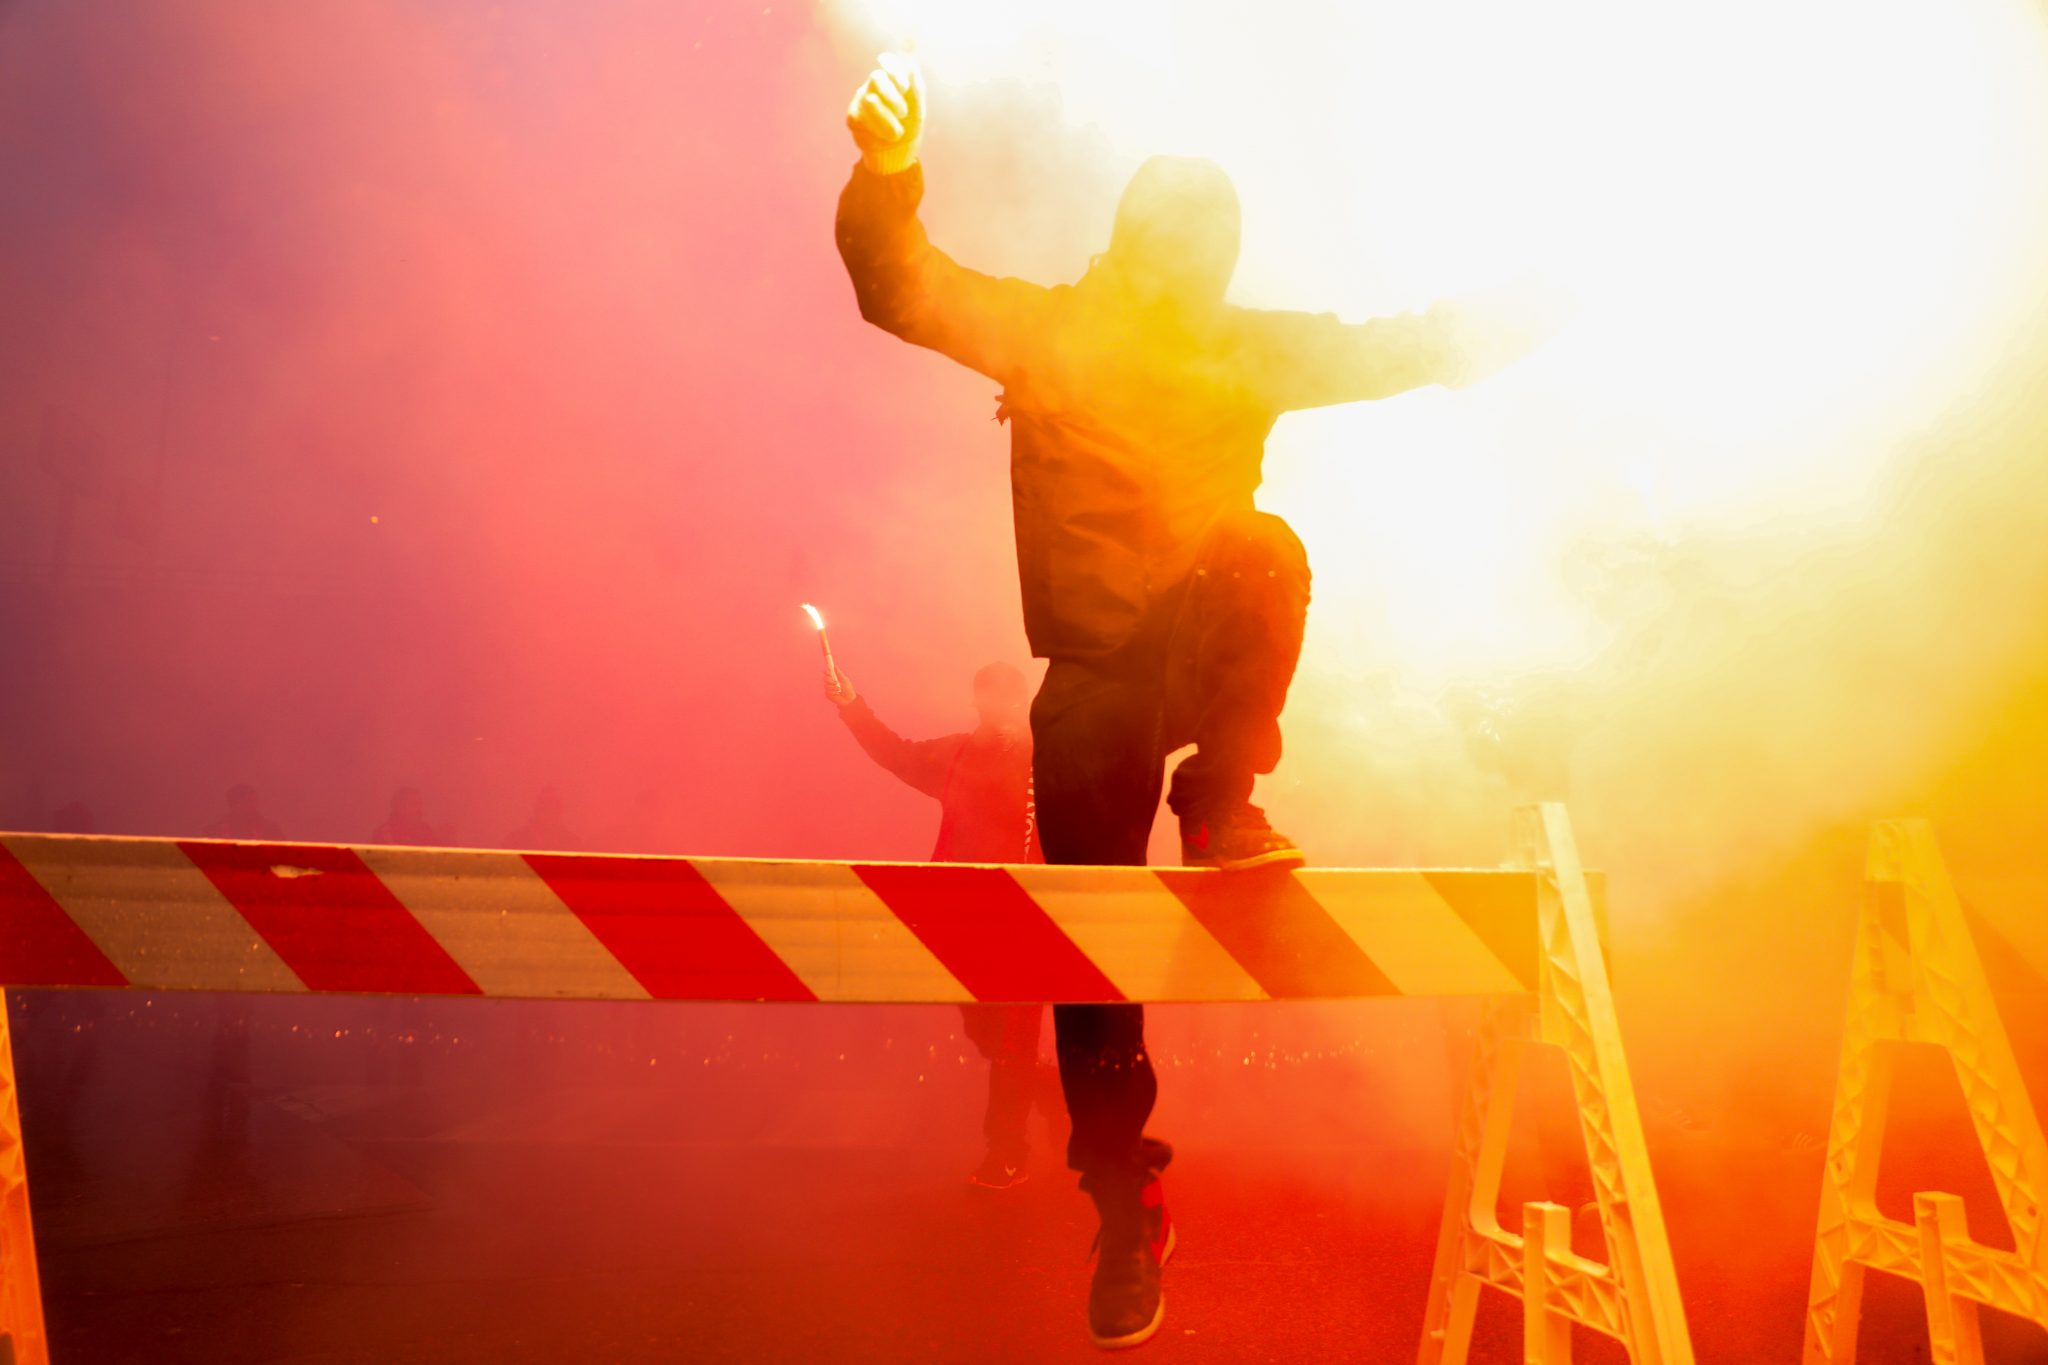 A Toronto FC fan with flares climbs over a barrier to the 2017 home opener at BMO Field. Luke Galati Photography/Toronto FC